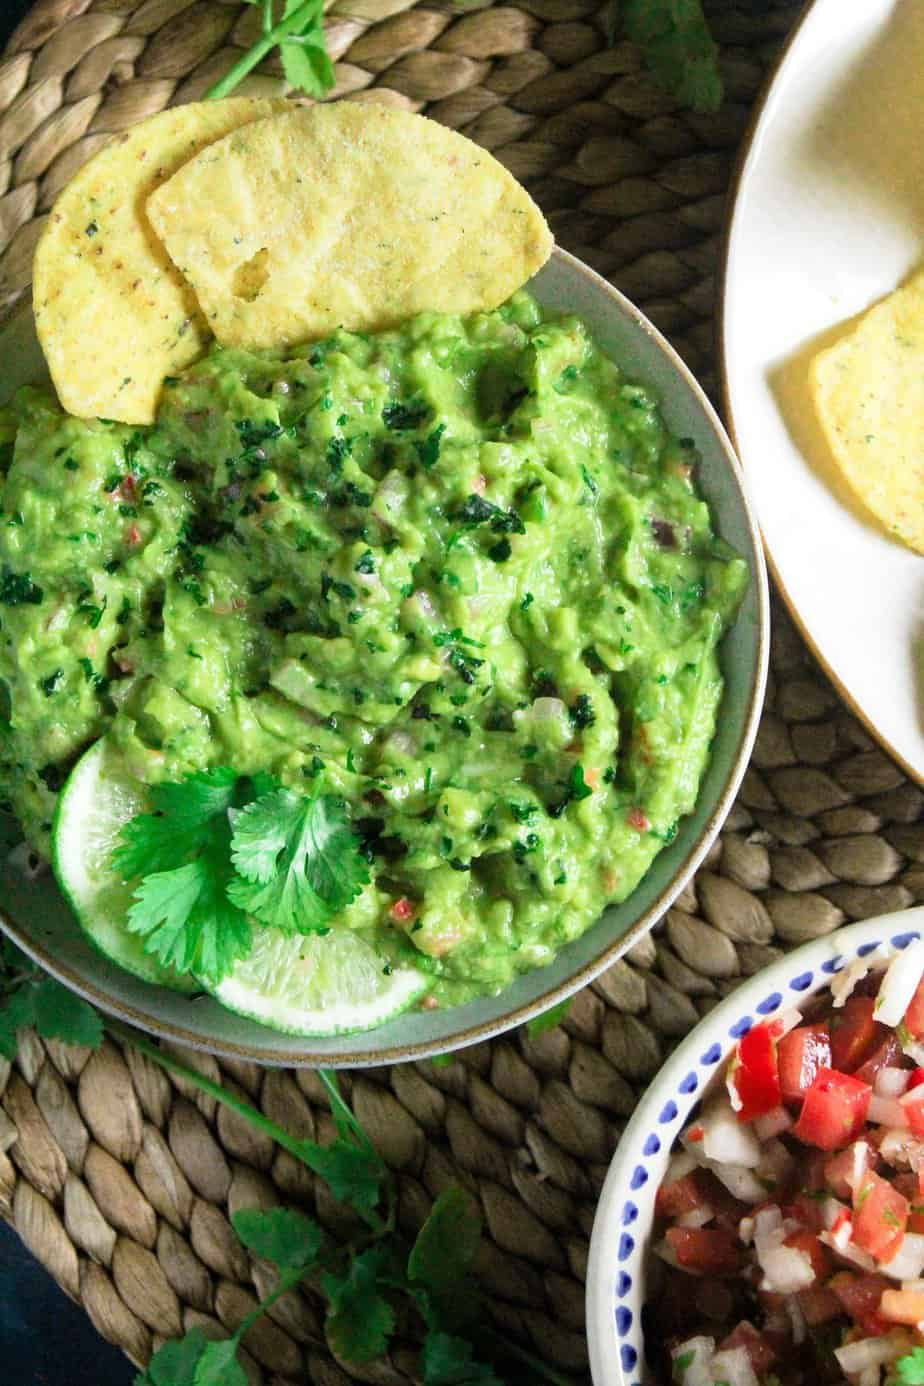 The Best Guacamole - Easy and Foolproof